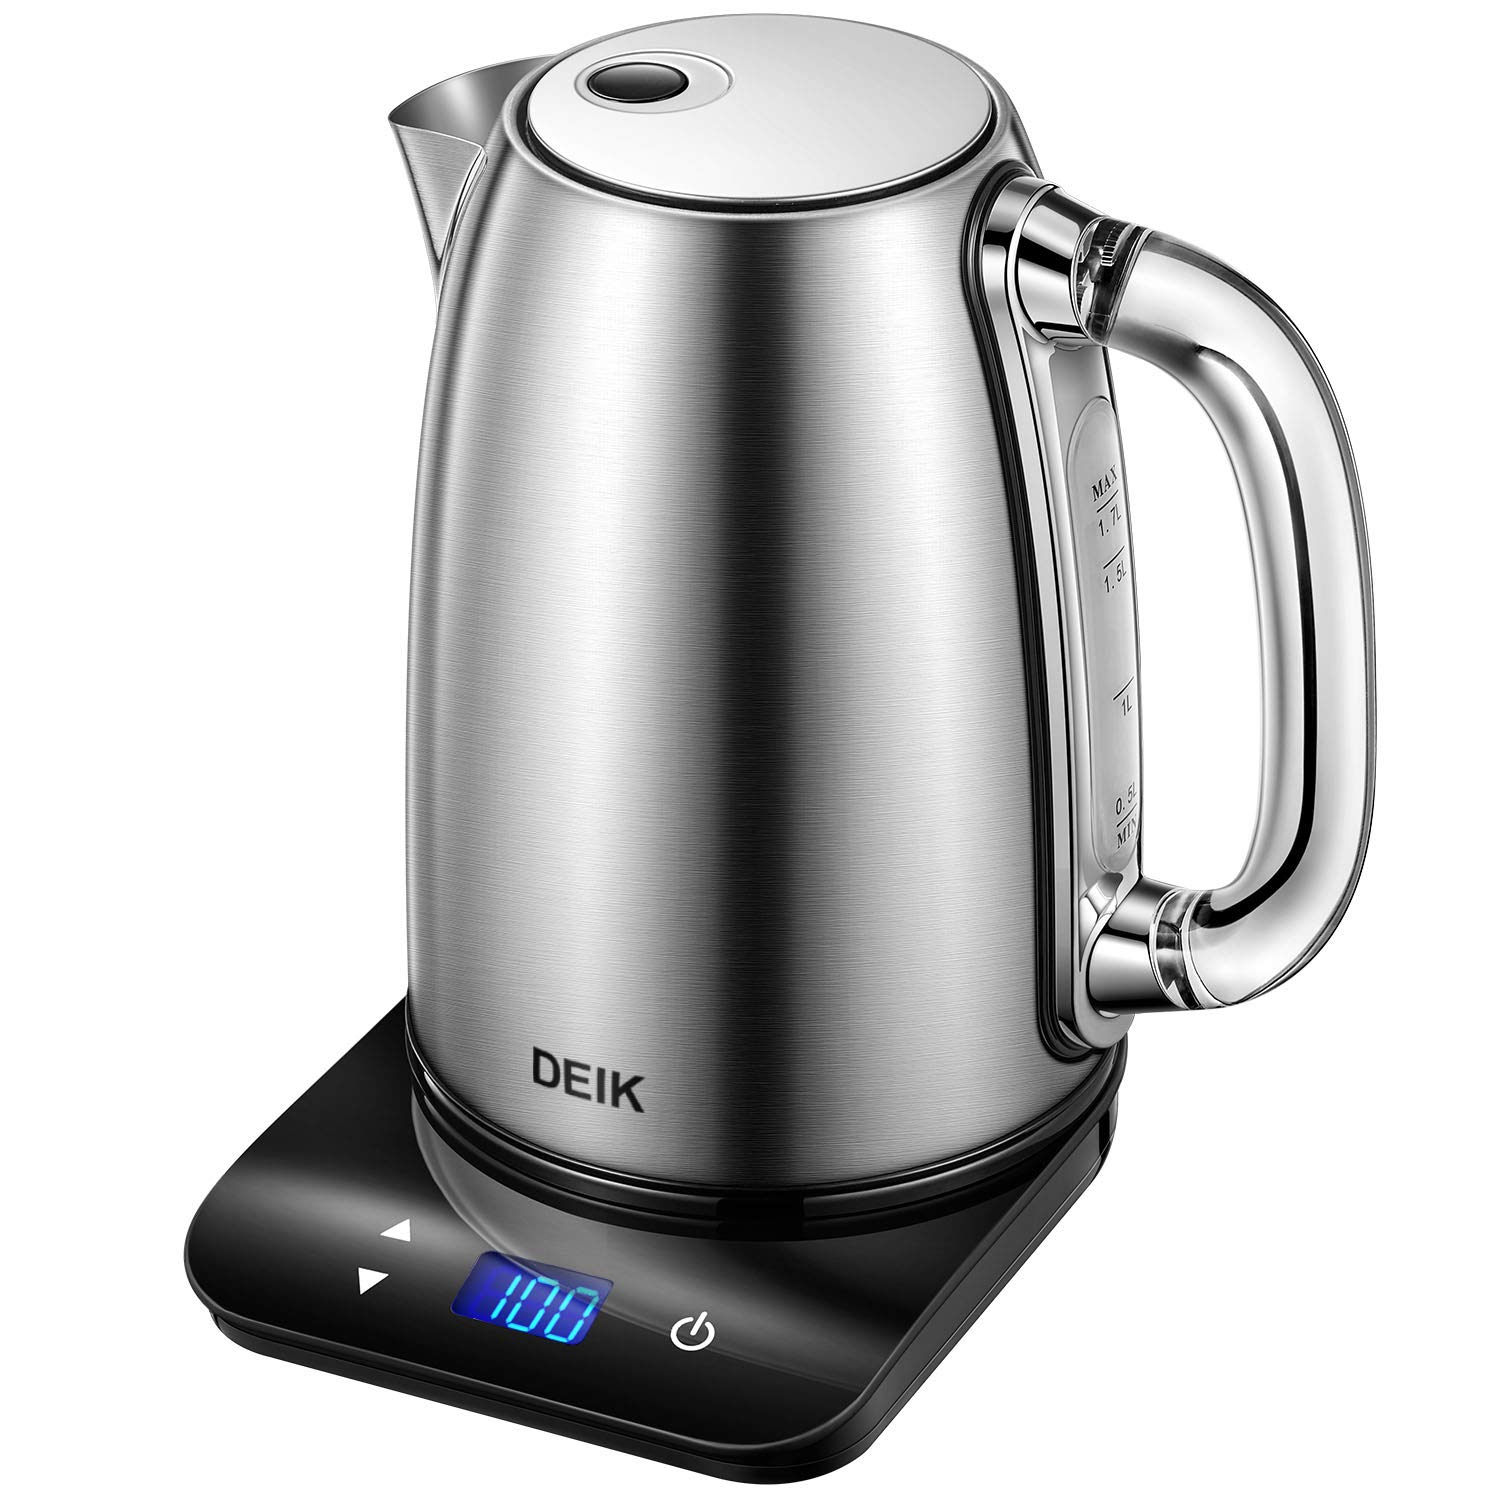 Deik Electric Kettle Temperature Control, 1.7L Kettle 304 Stainless Steel with LED Touch Base and Acrylic Handle, Memory Function, 1500W, Auto Shut-Off Function and Boil-Dry Protection, BPA-Free